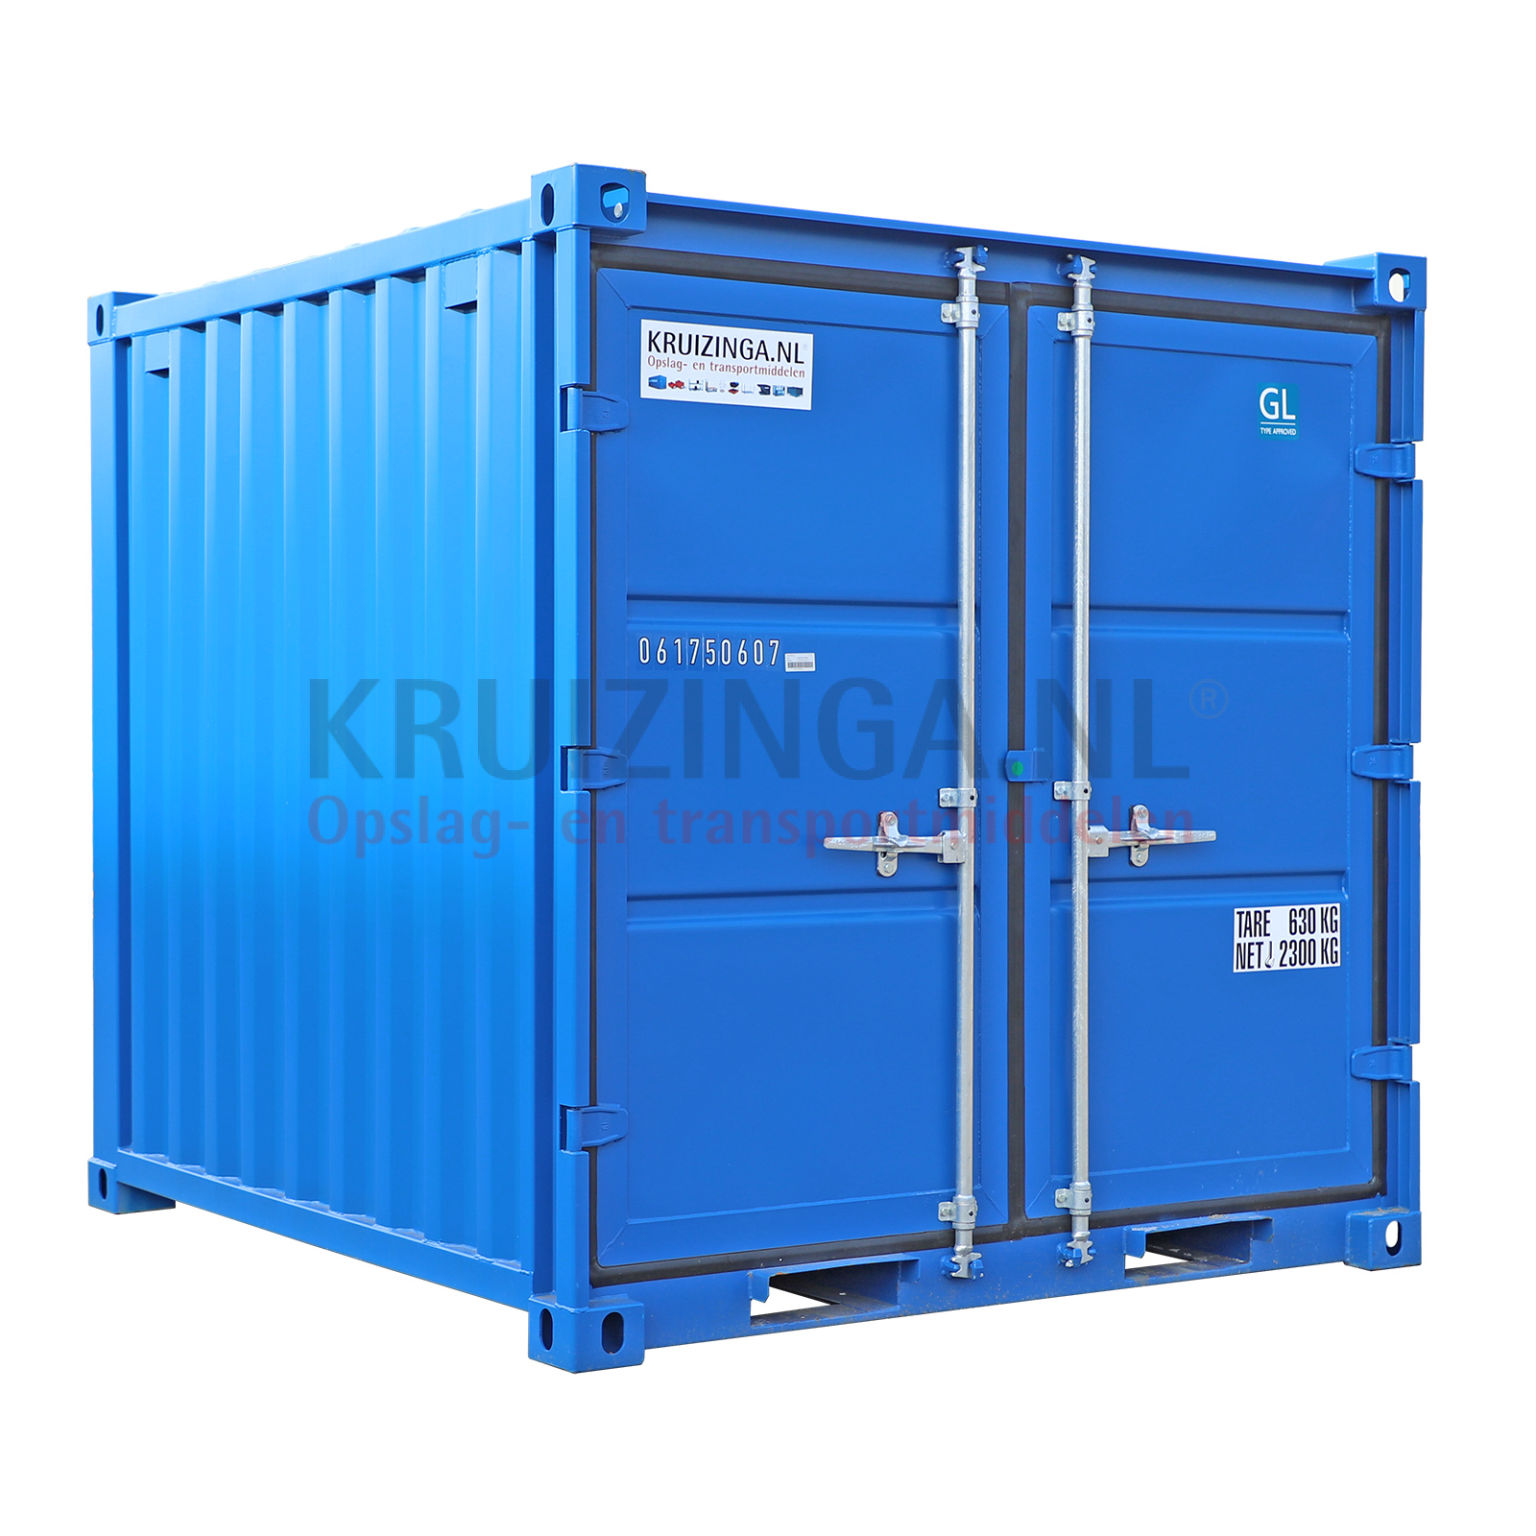 container materieelcontainer 8 ft vanaf 2212 75 incl levering. Black Bedroom Furniture Sets. Home Design Ideas